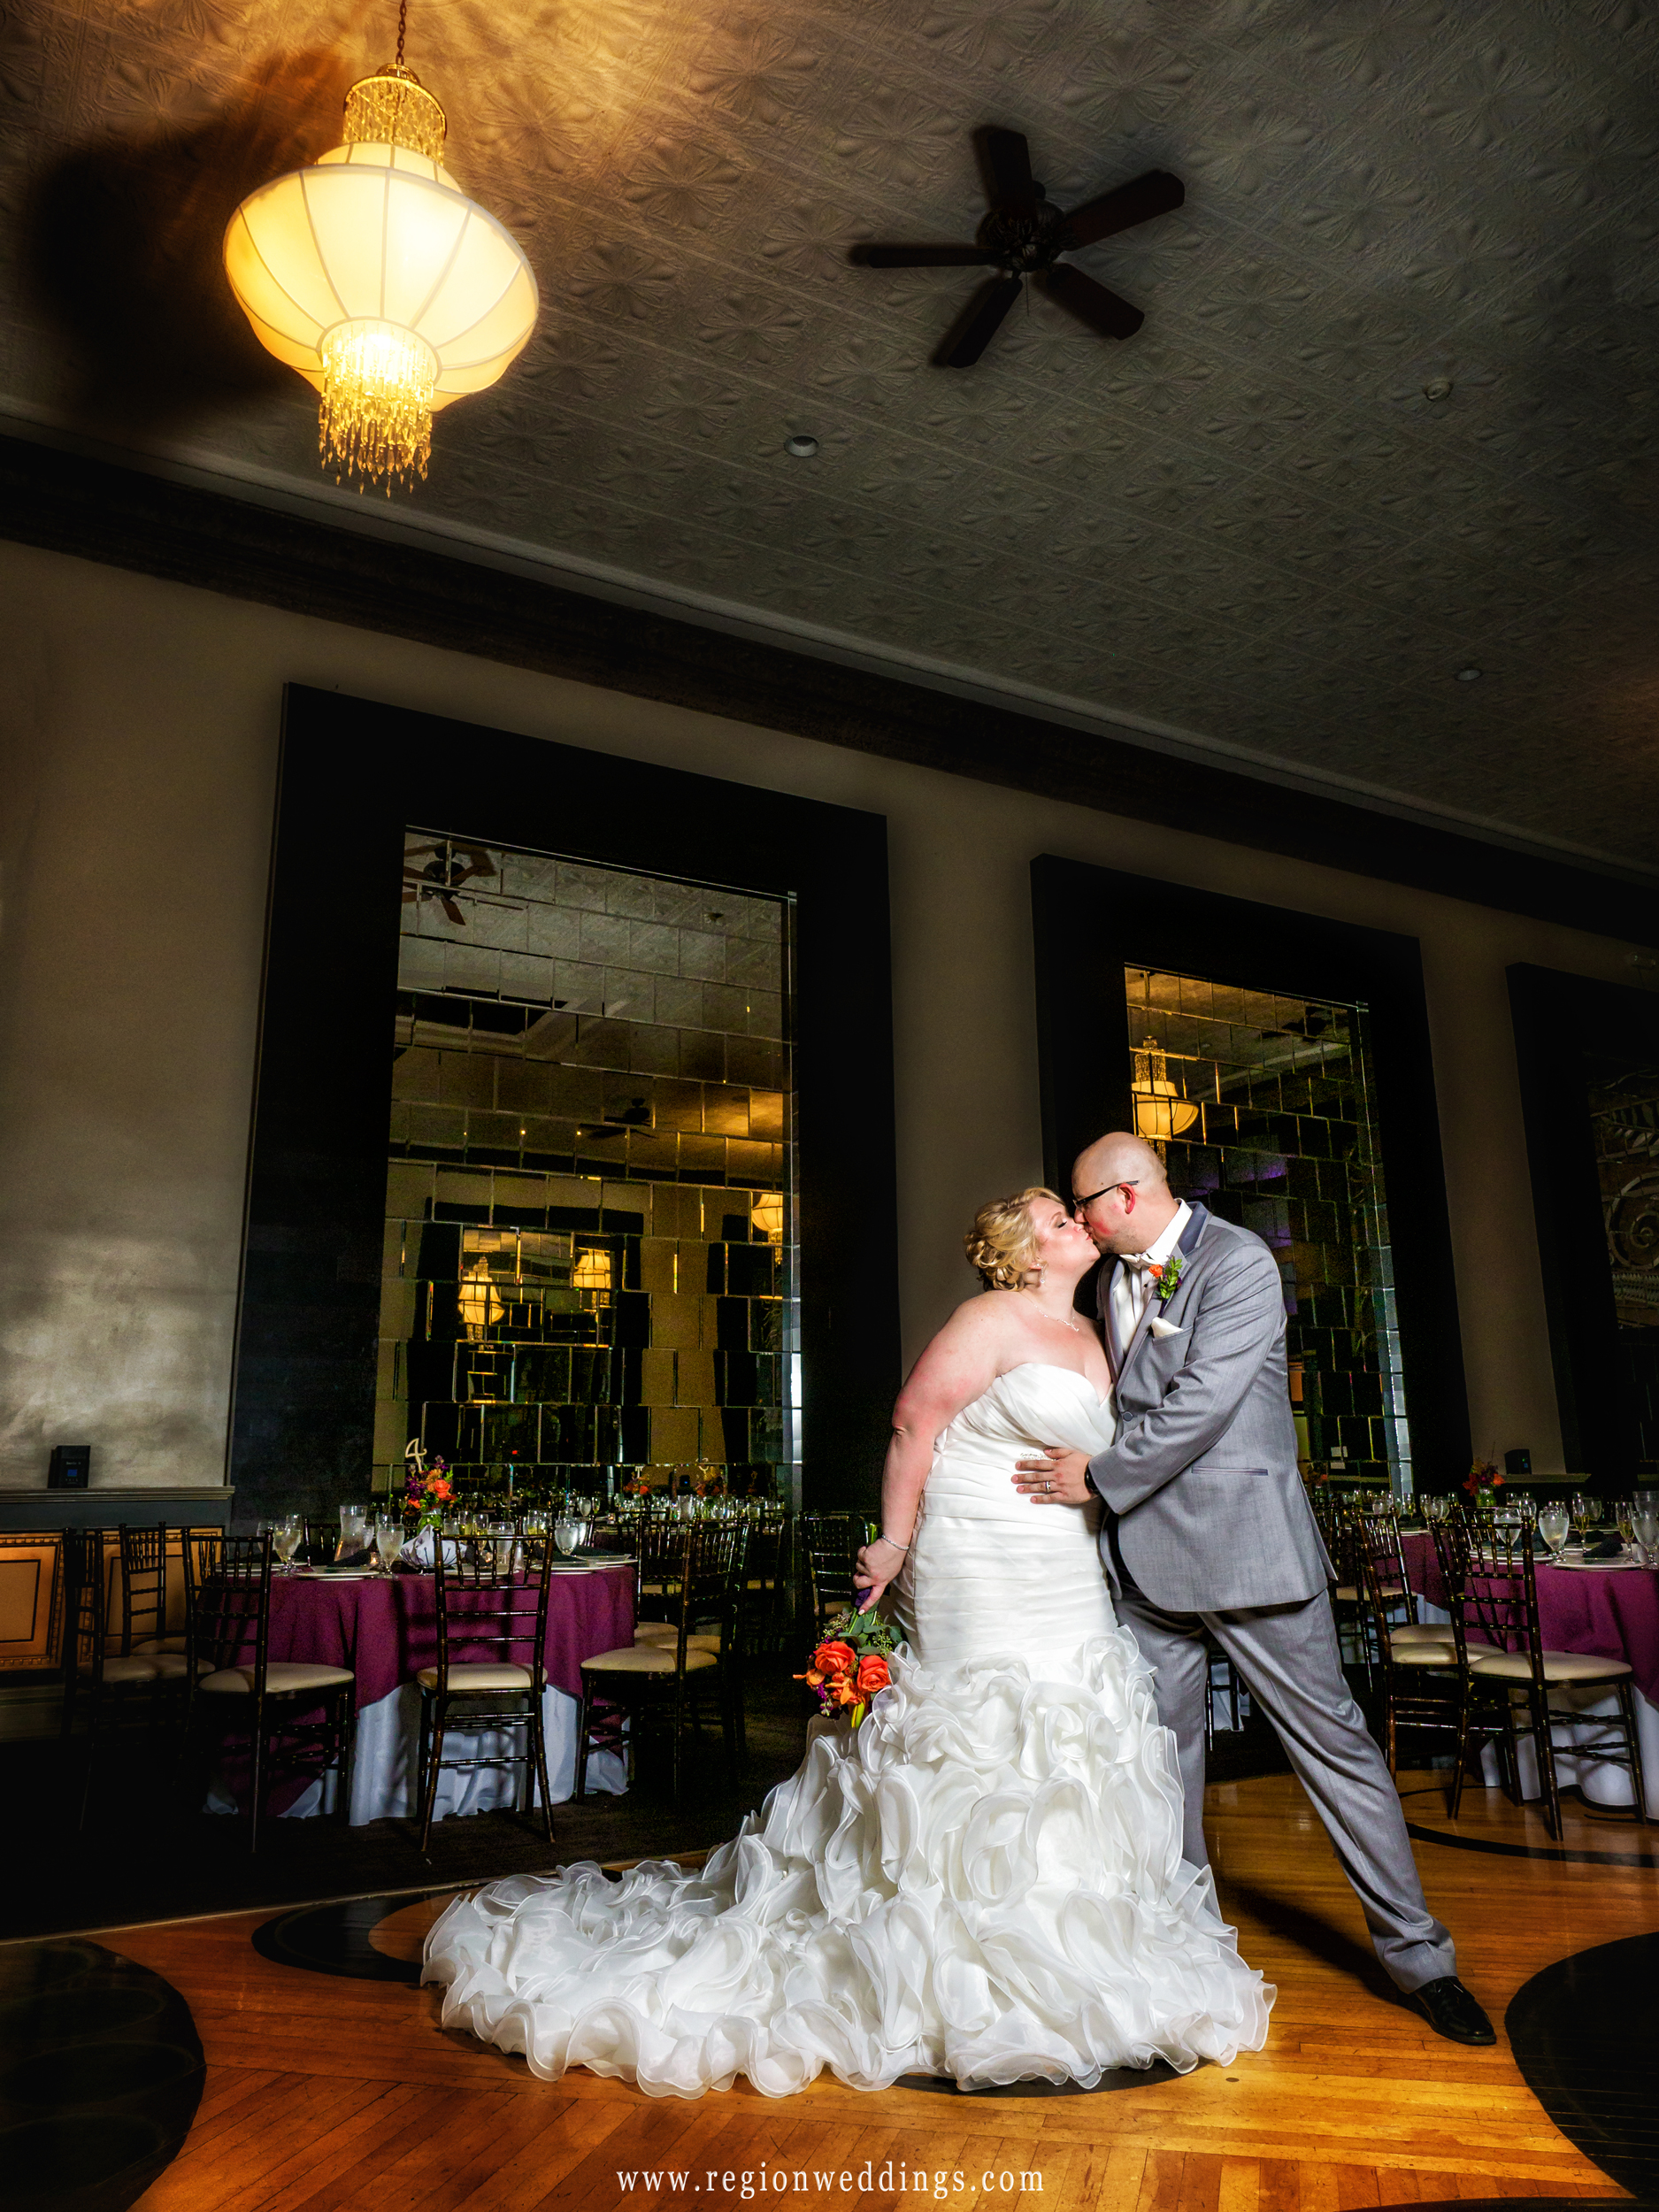 Bride and groom share a kiss in the middle of the ballroom of The Allure.